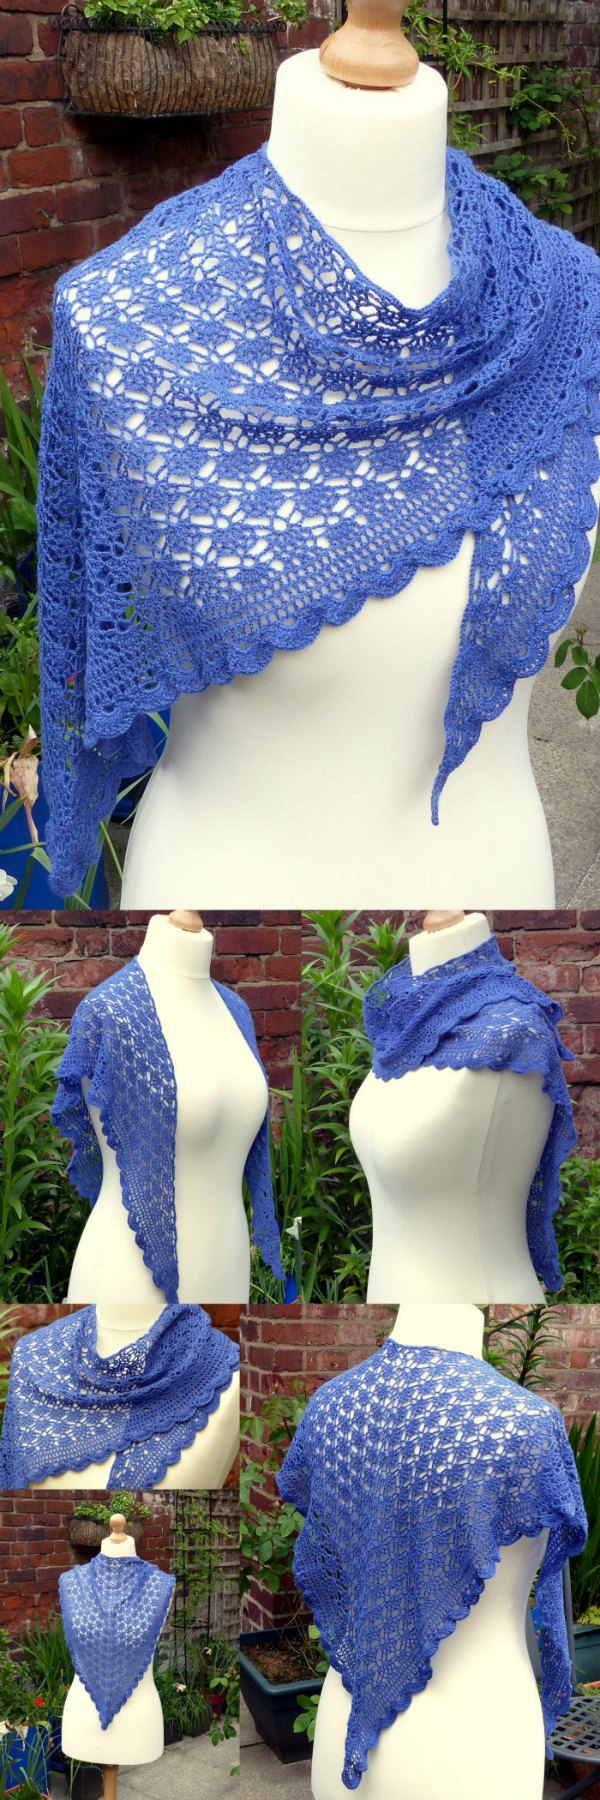 Free lace shawl crochet pattern. Free downloadable pattern in US or UK terms, with diagram.